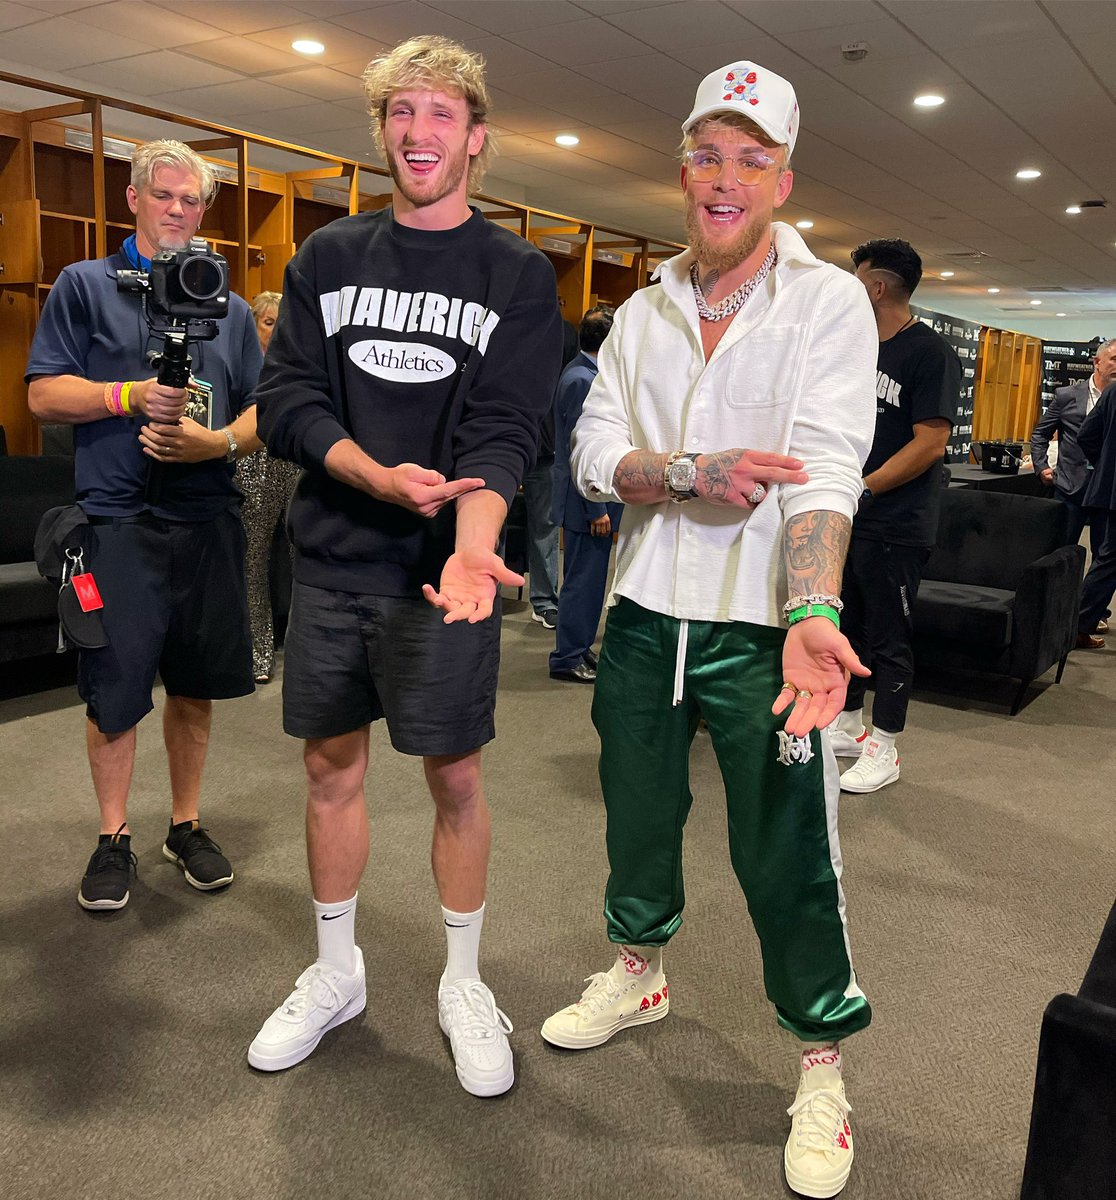 Jake Paul On Twitter The Younger Us Wouldn T Believe How Far We Ve Come It S Showtime Love You To Death Big Bro Loganpaul